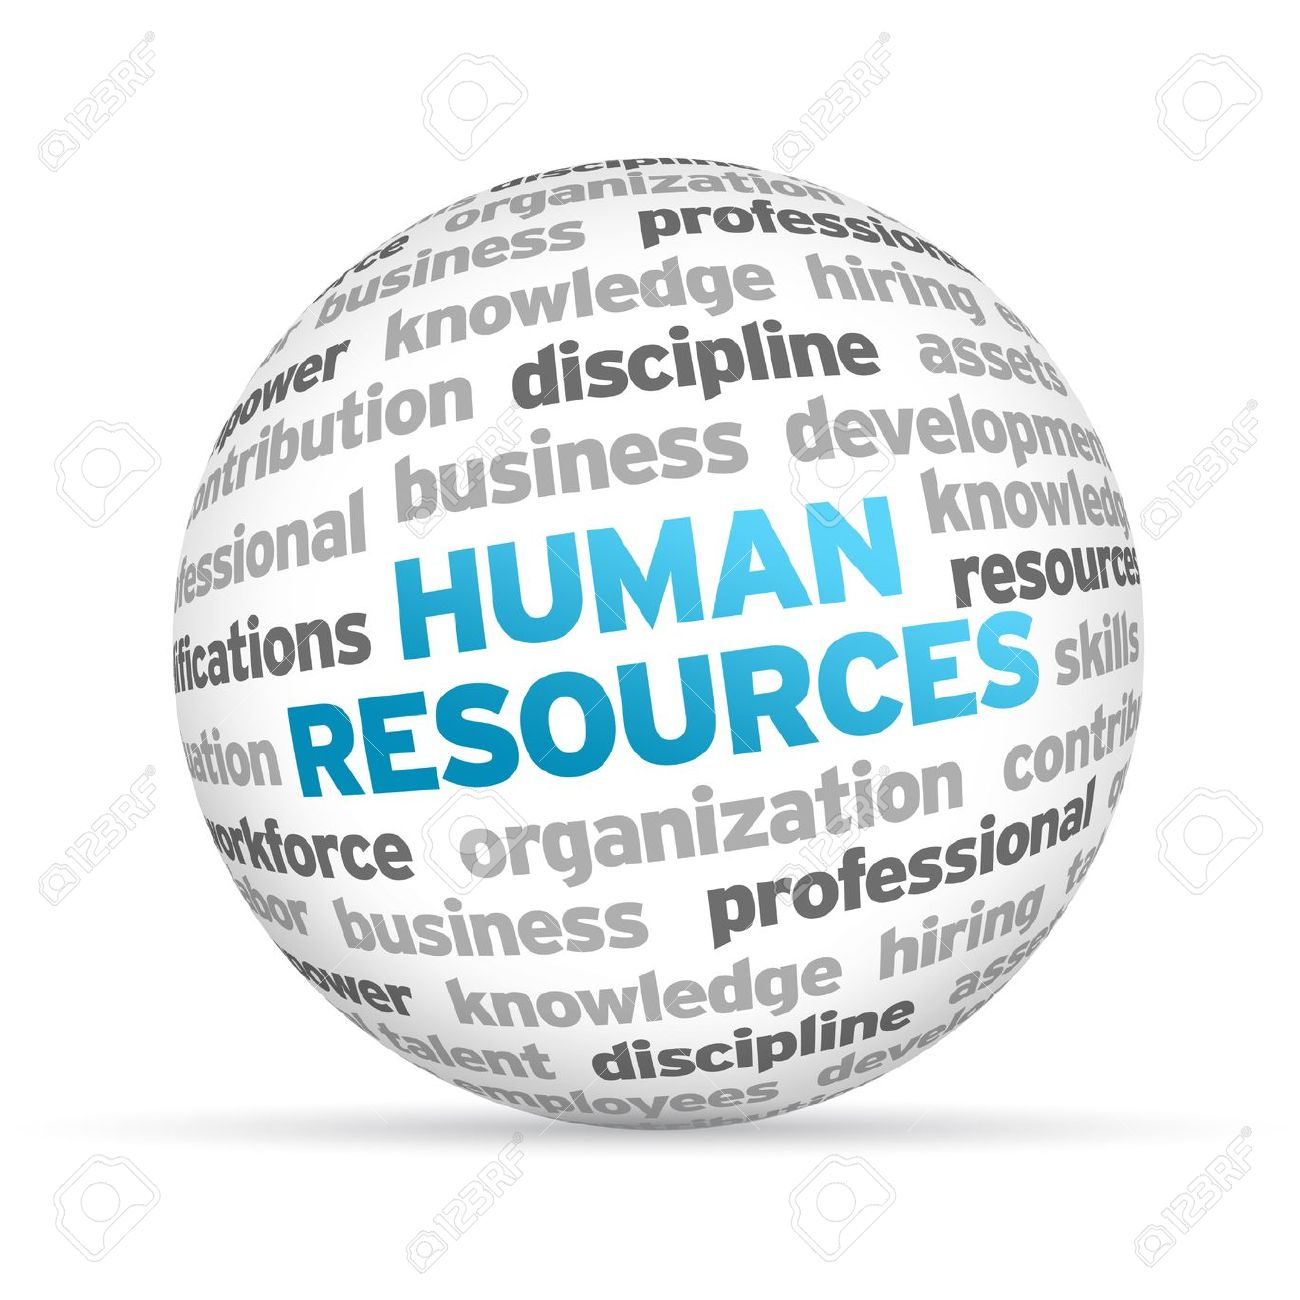 Human resources clip art free.